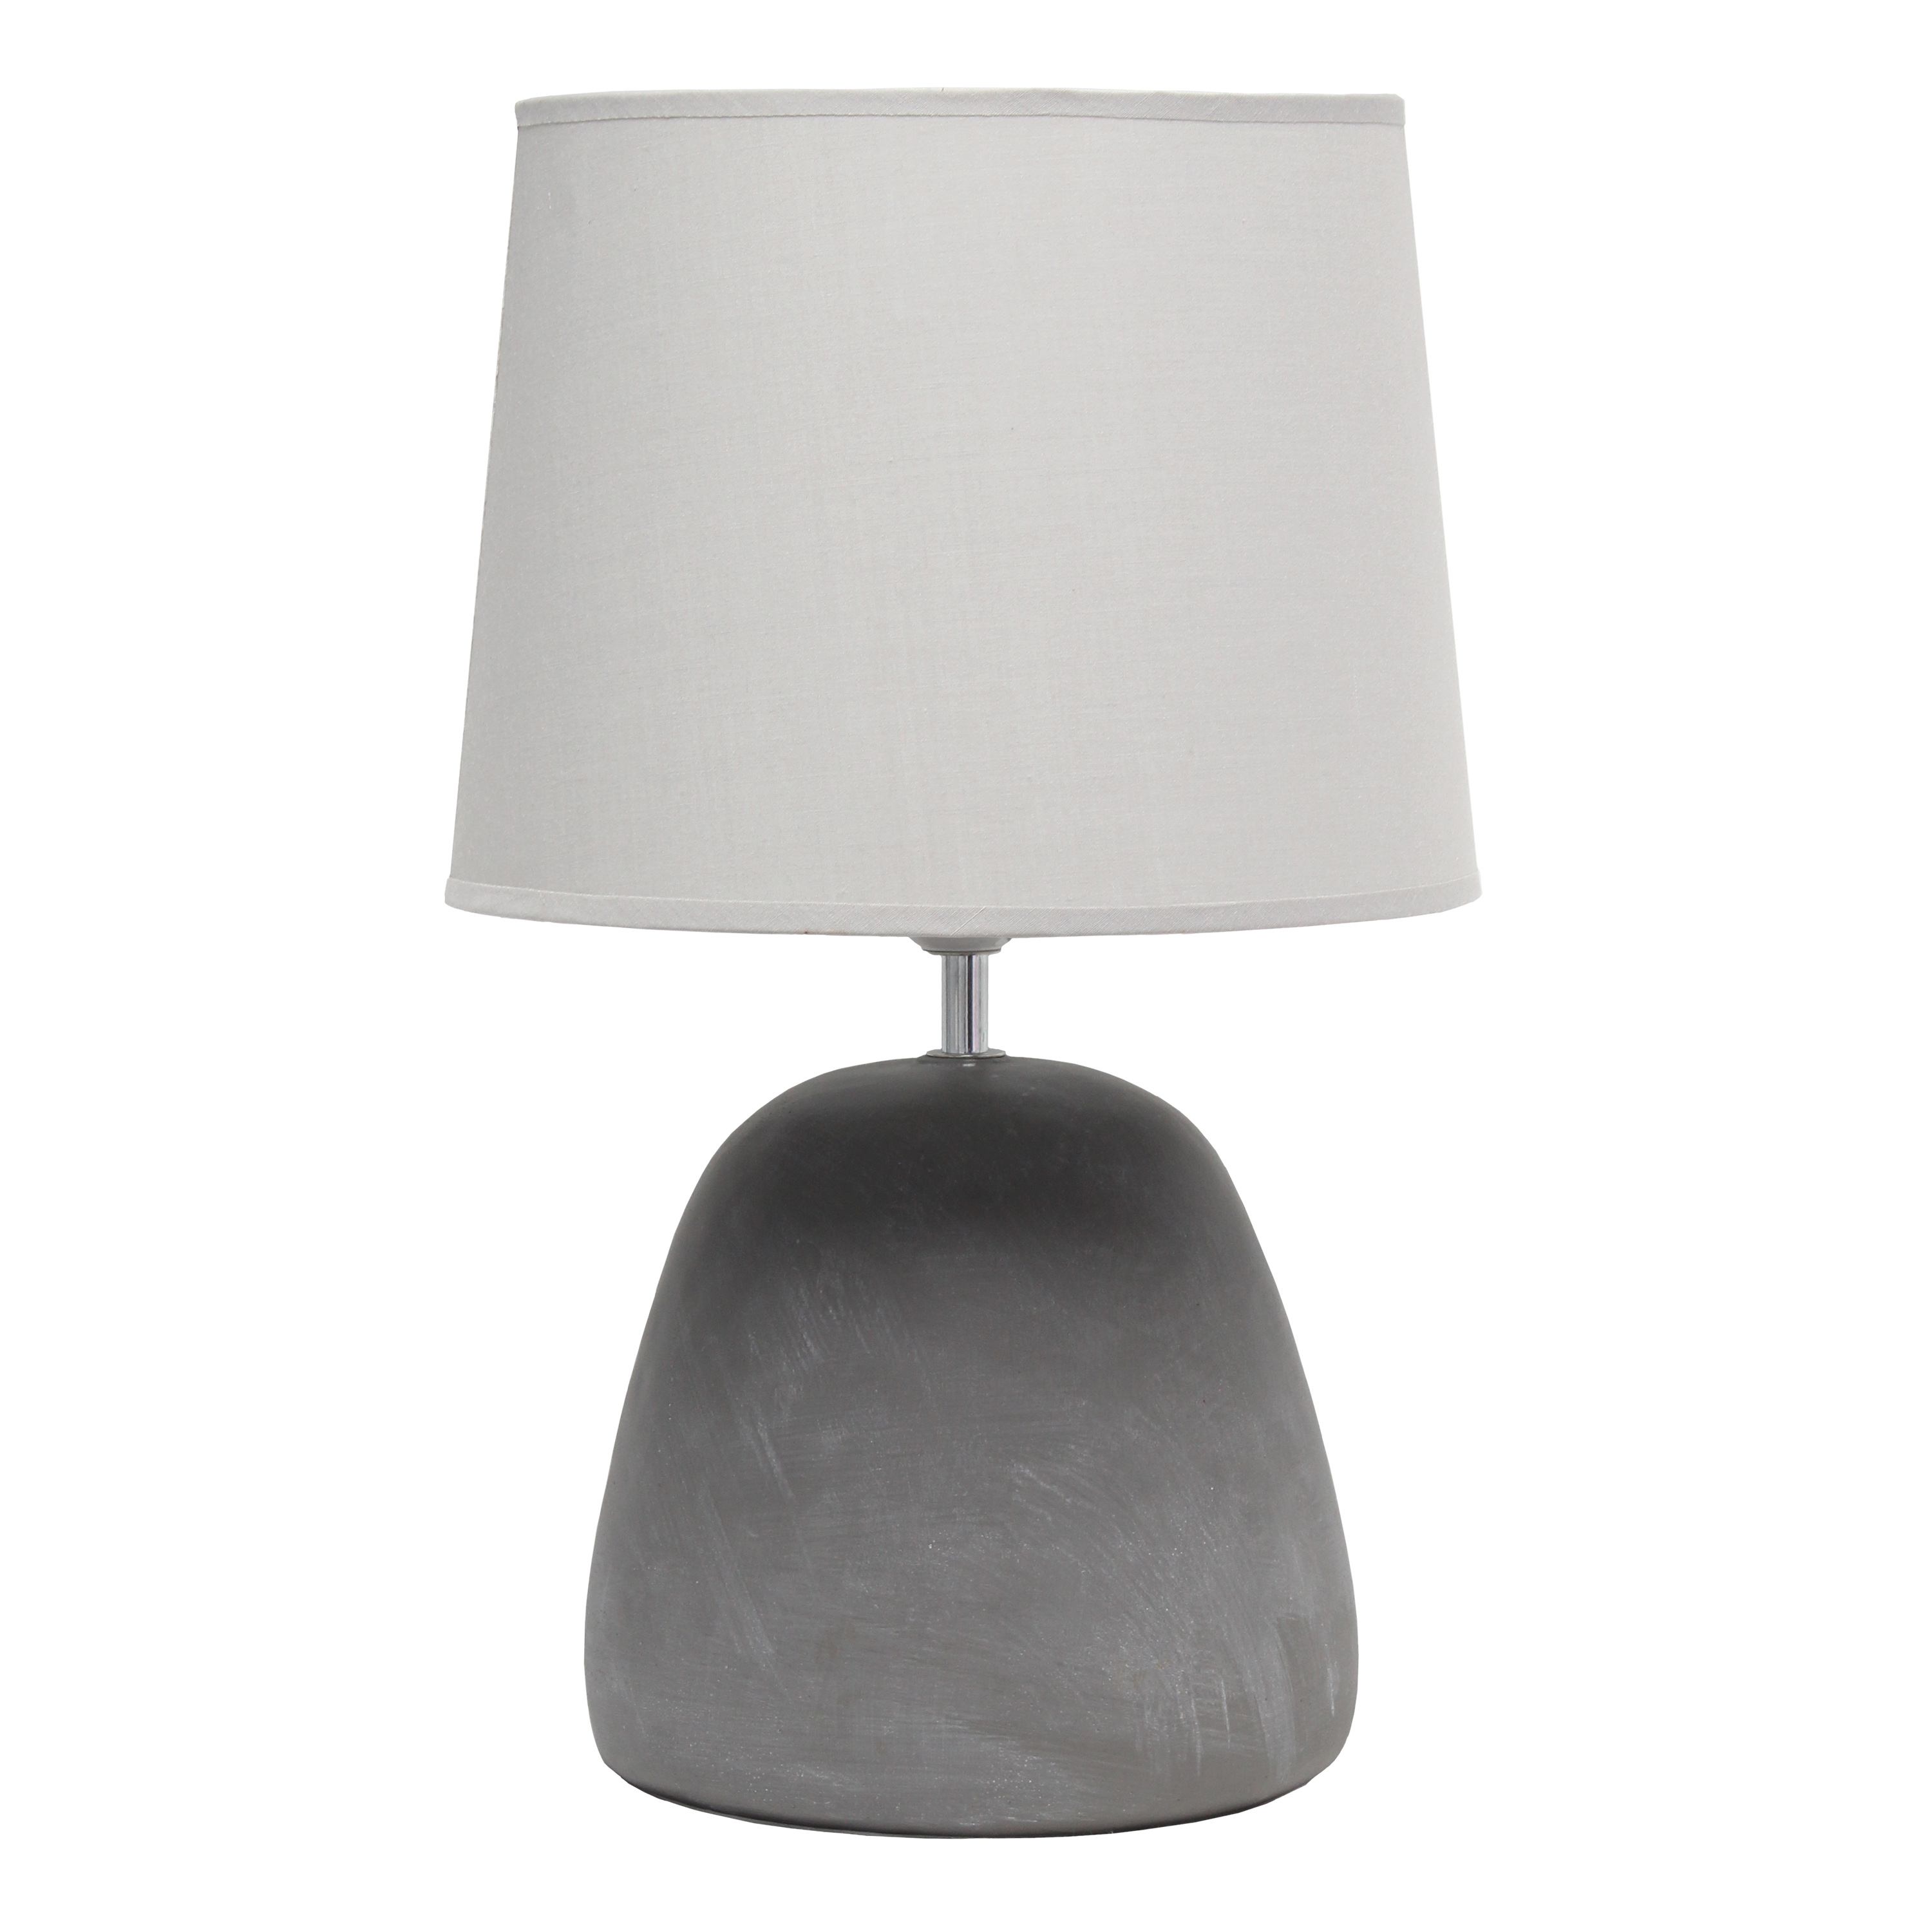 Simple Designs Round Concrete Table Lamp, Gray